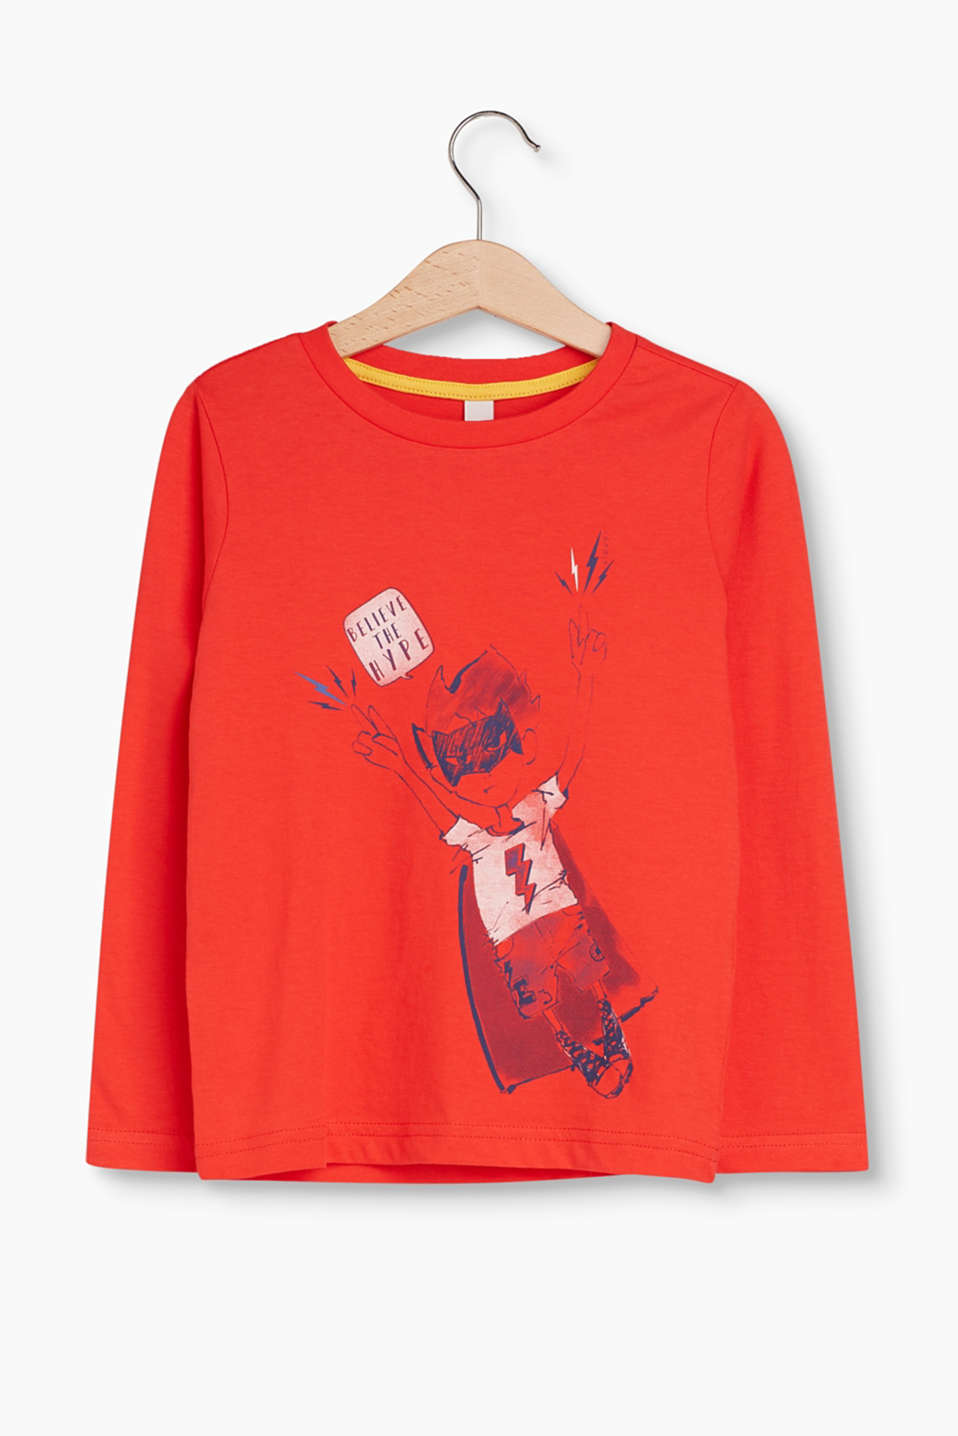 We are Heroes! This long sleeve top with a superhero print is for brave boys